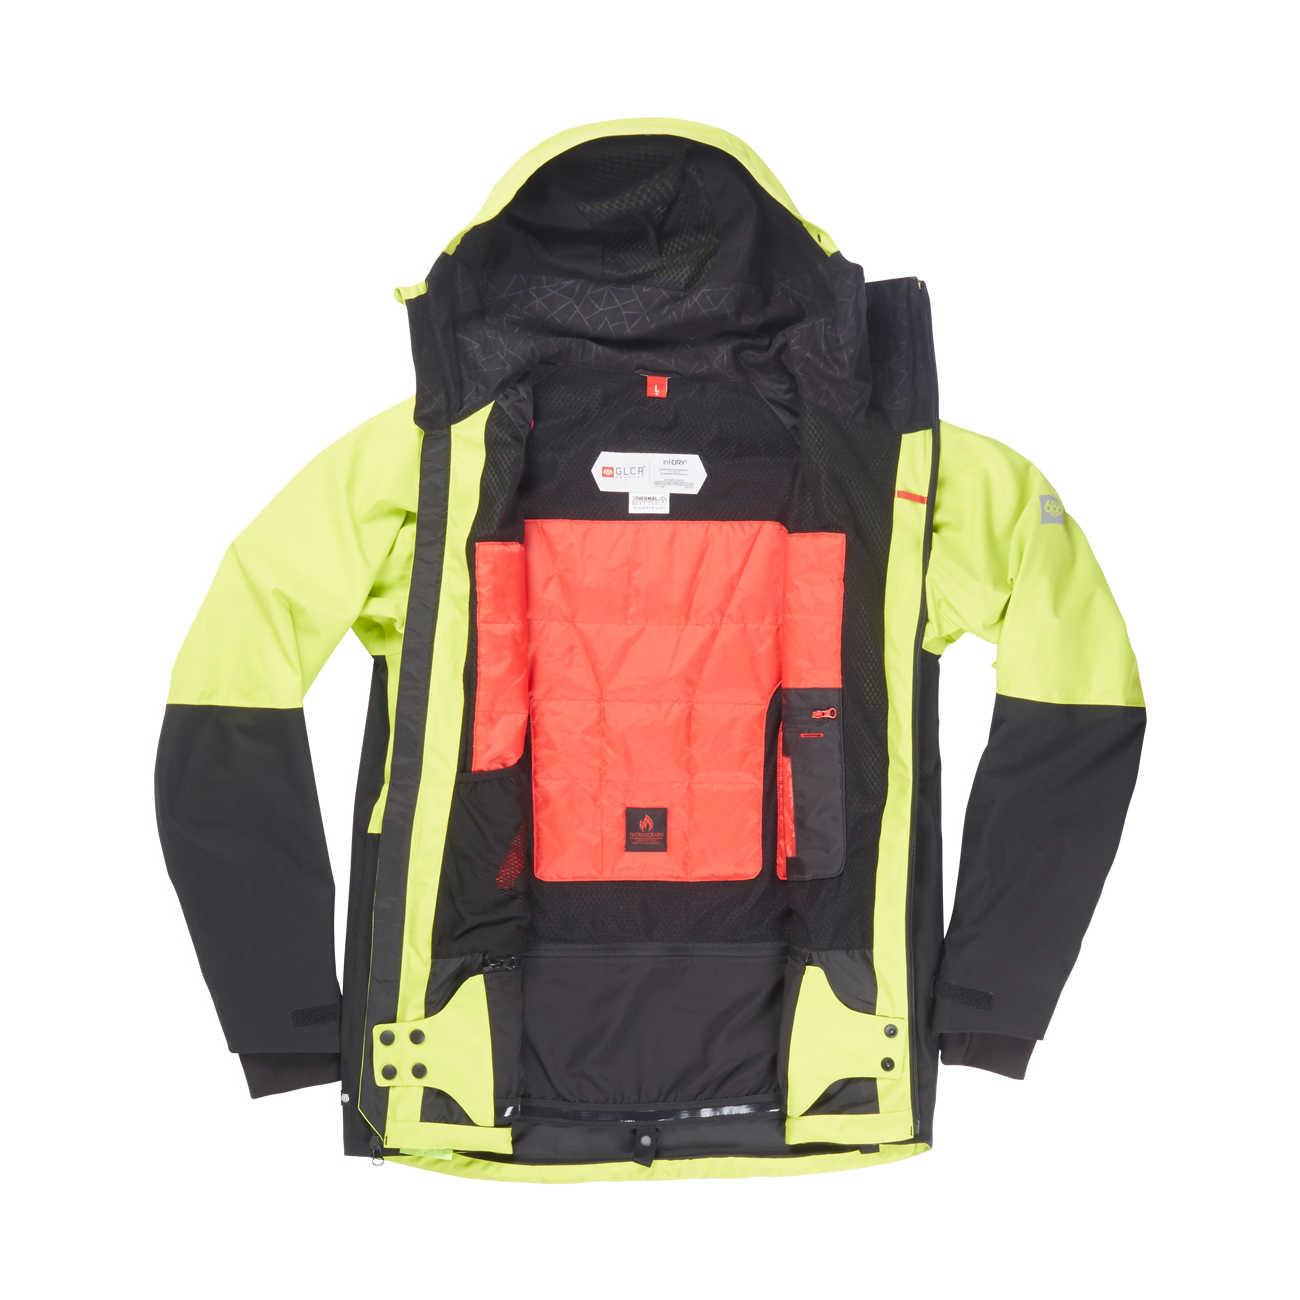 Veste de snowboard GLCR Hydra Thermagraph Jacket - Lime Twill Color Block 2